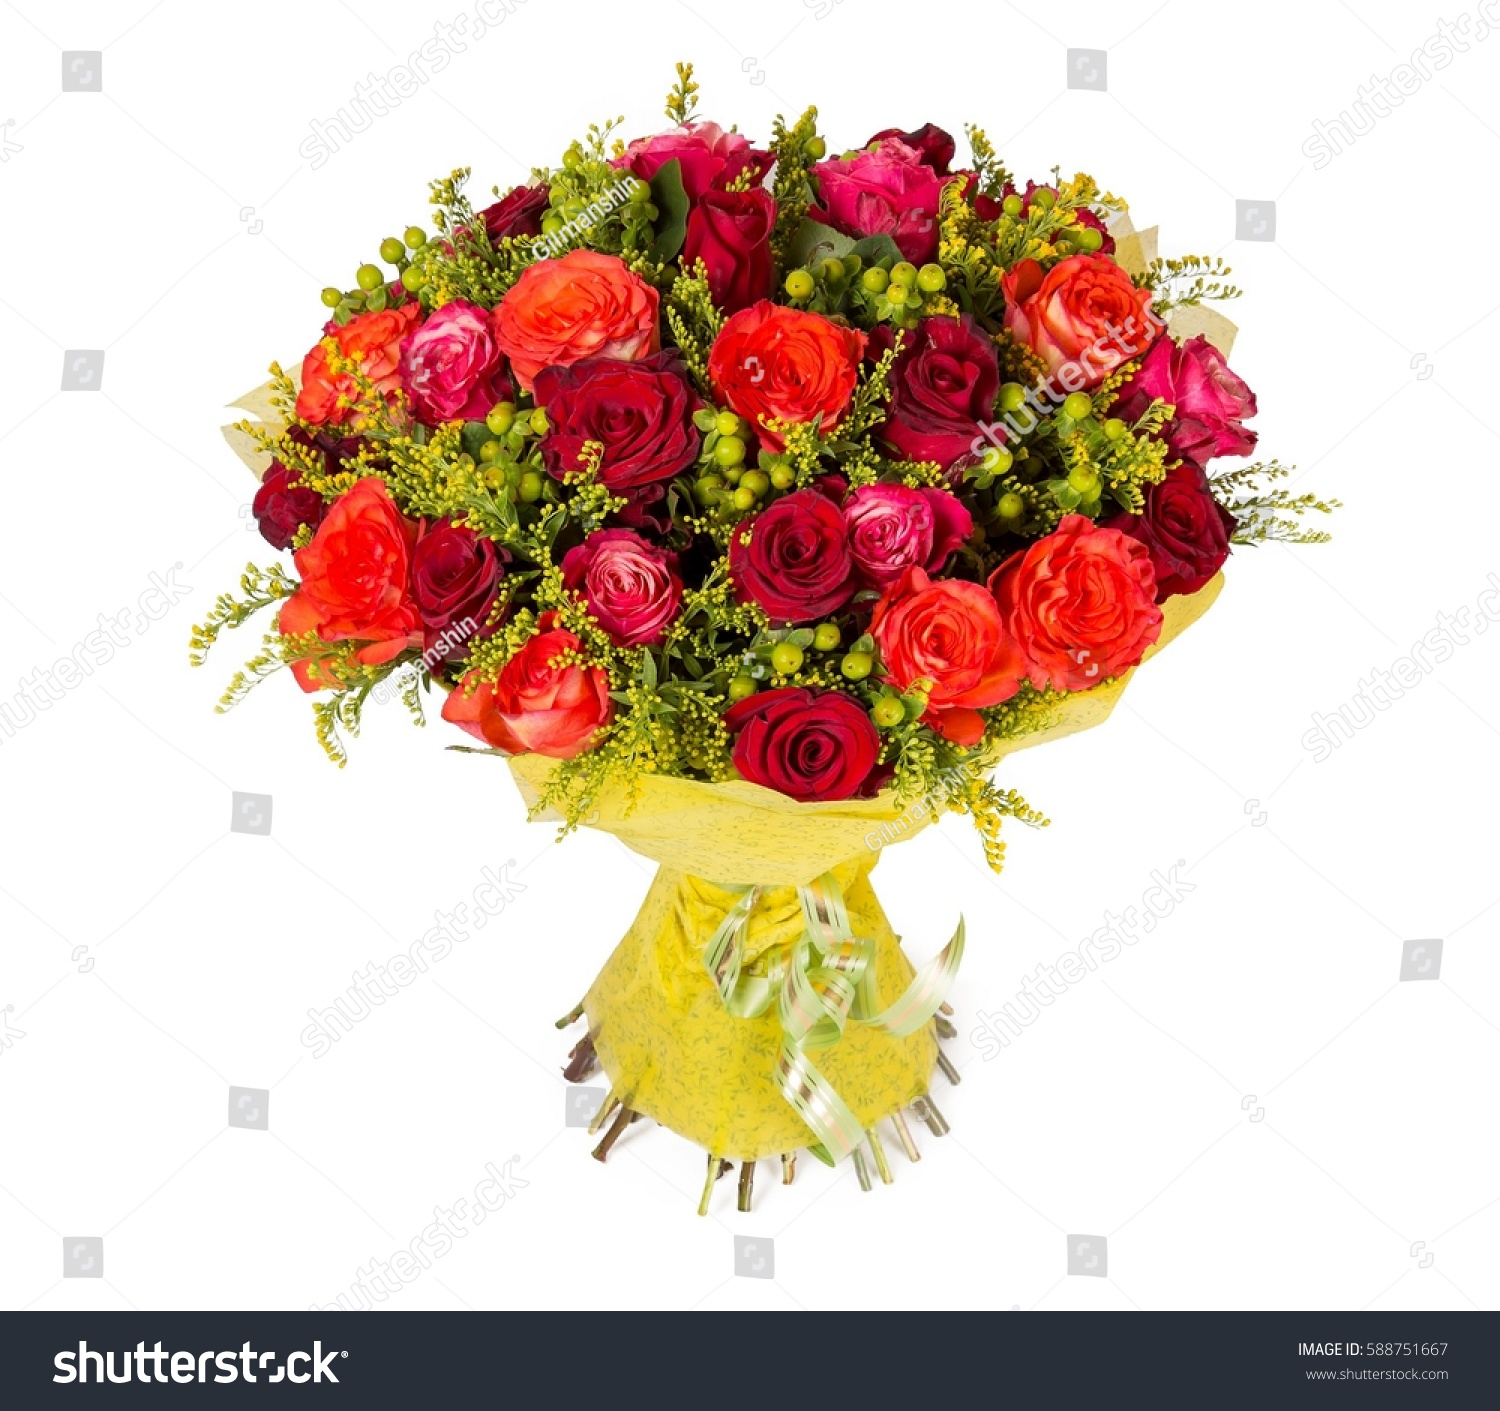 Attractive Colorful Flower Bouquet Picture Collection - Wedding and ...